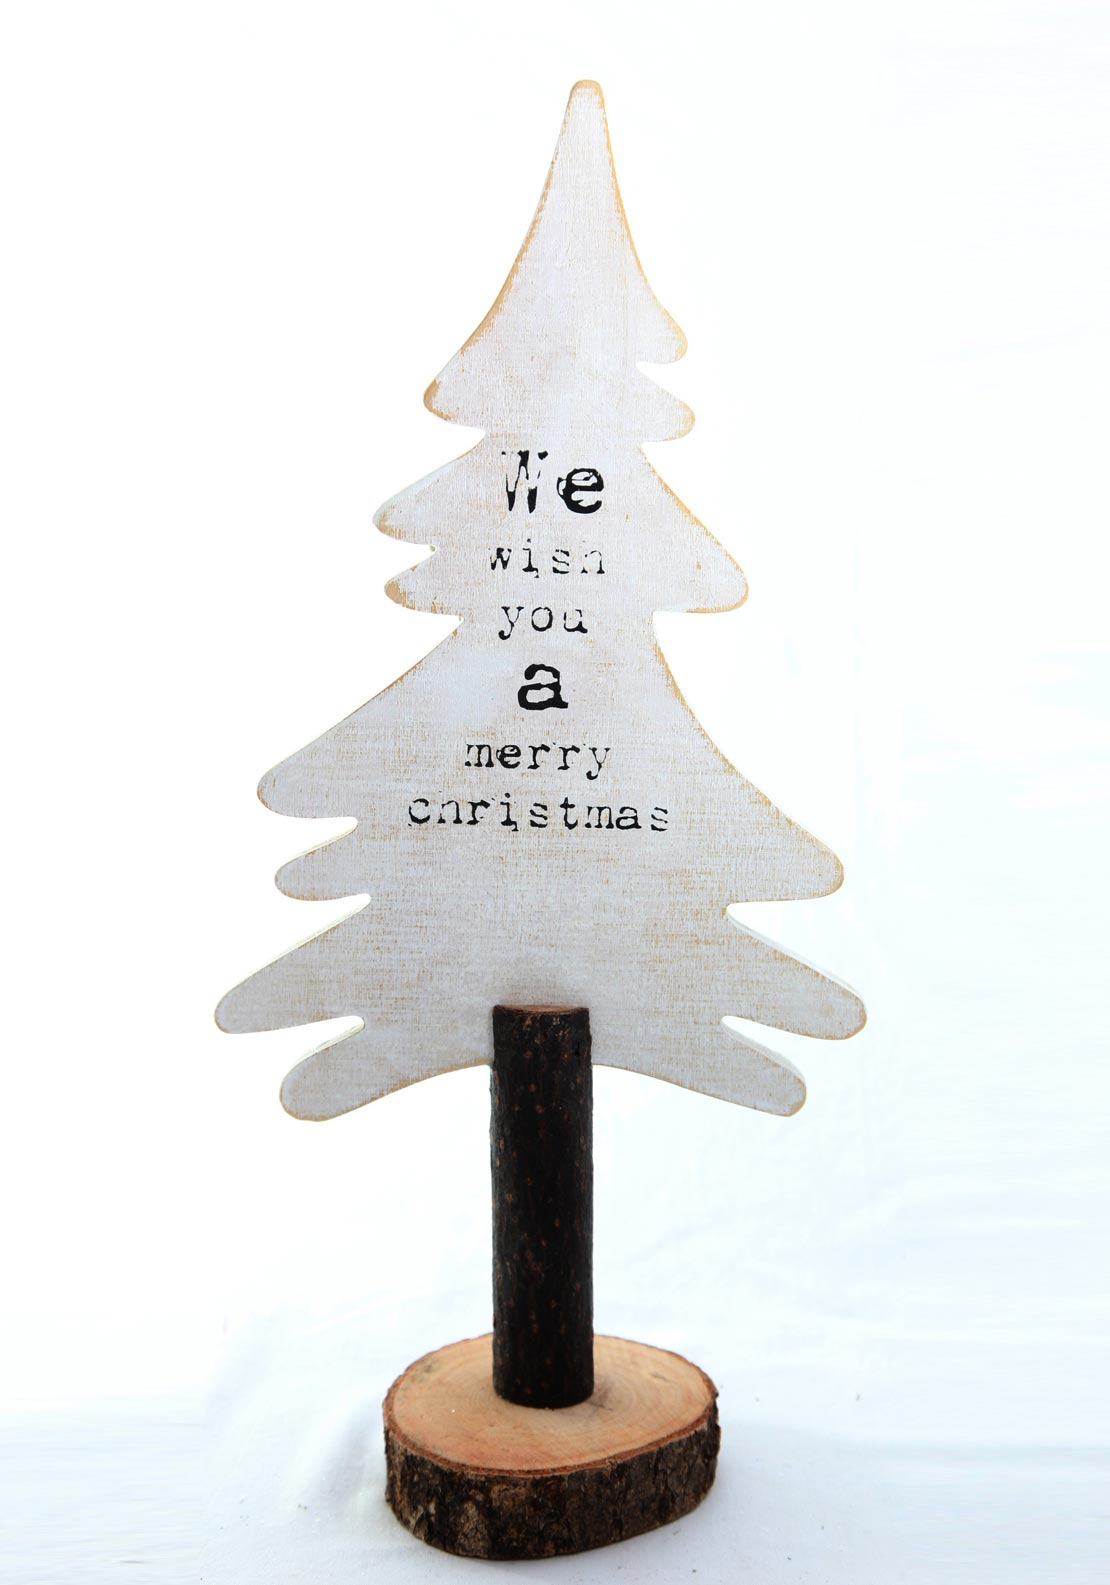 Verano Christmas Wooden Christmas Tree Small Decoration